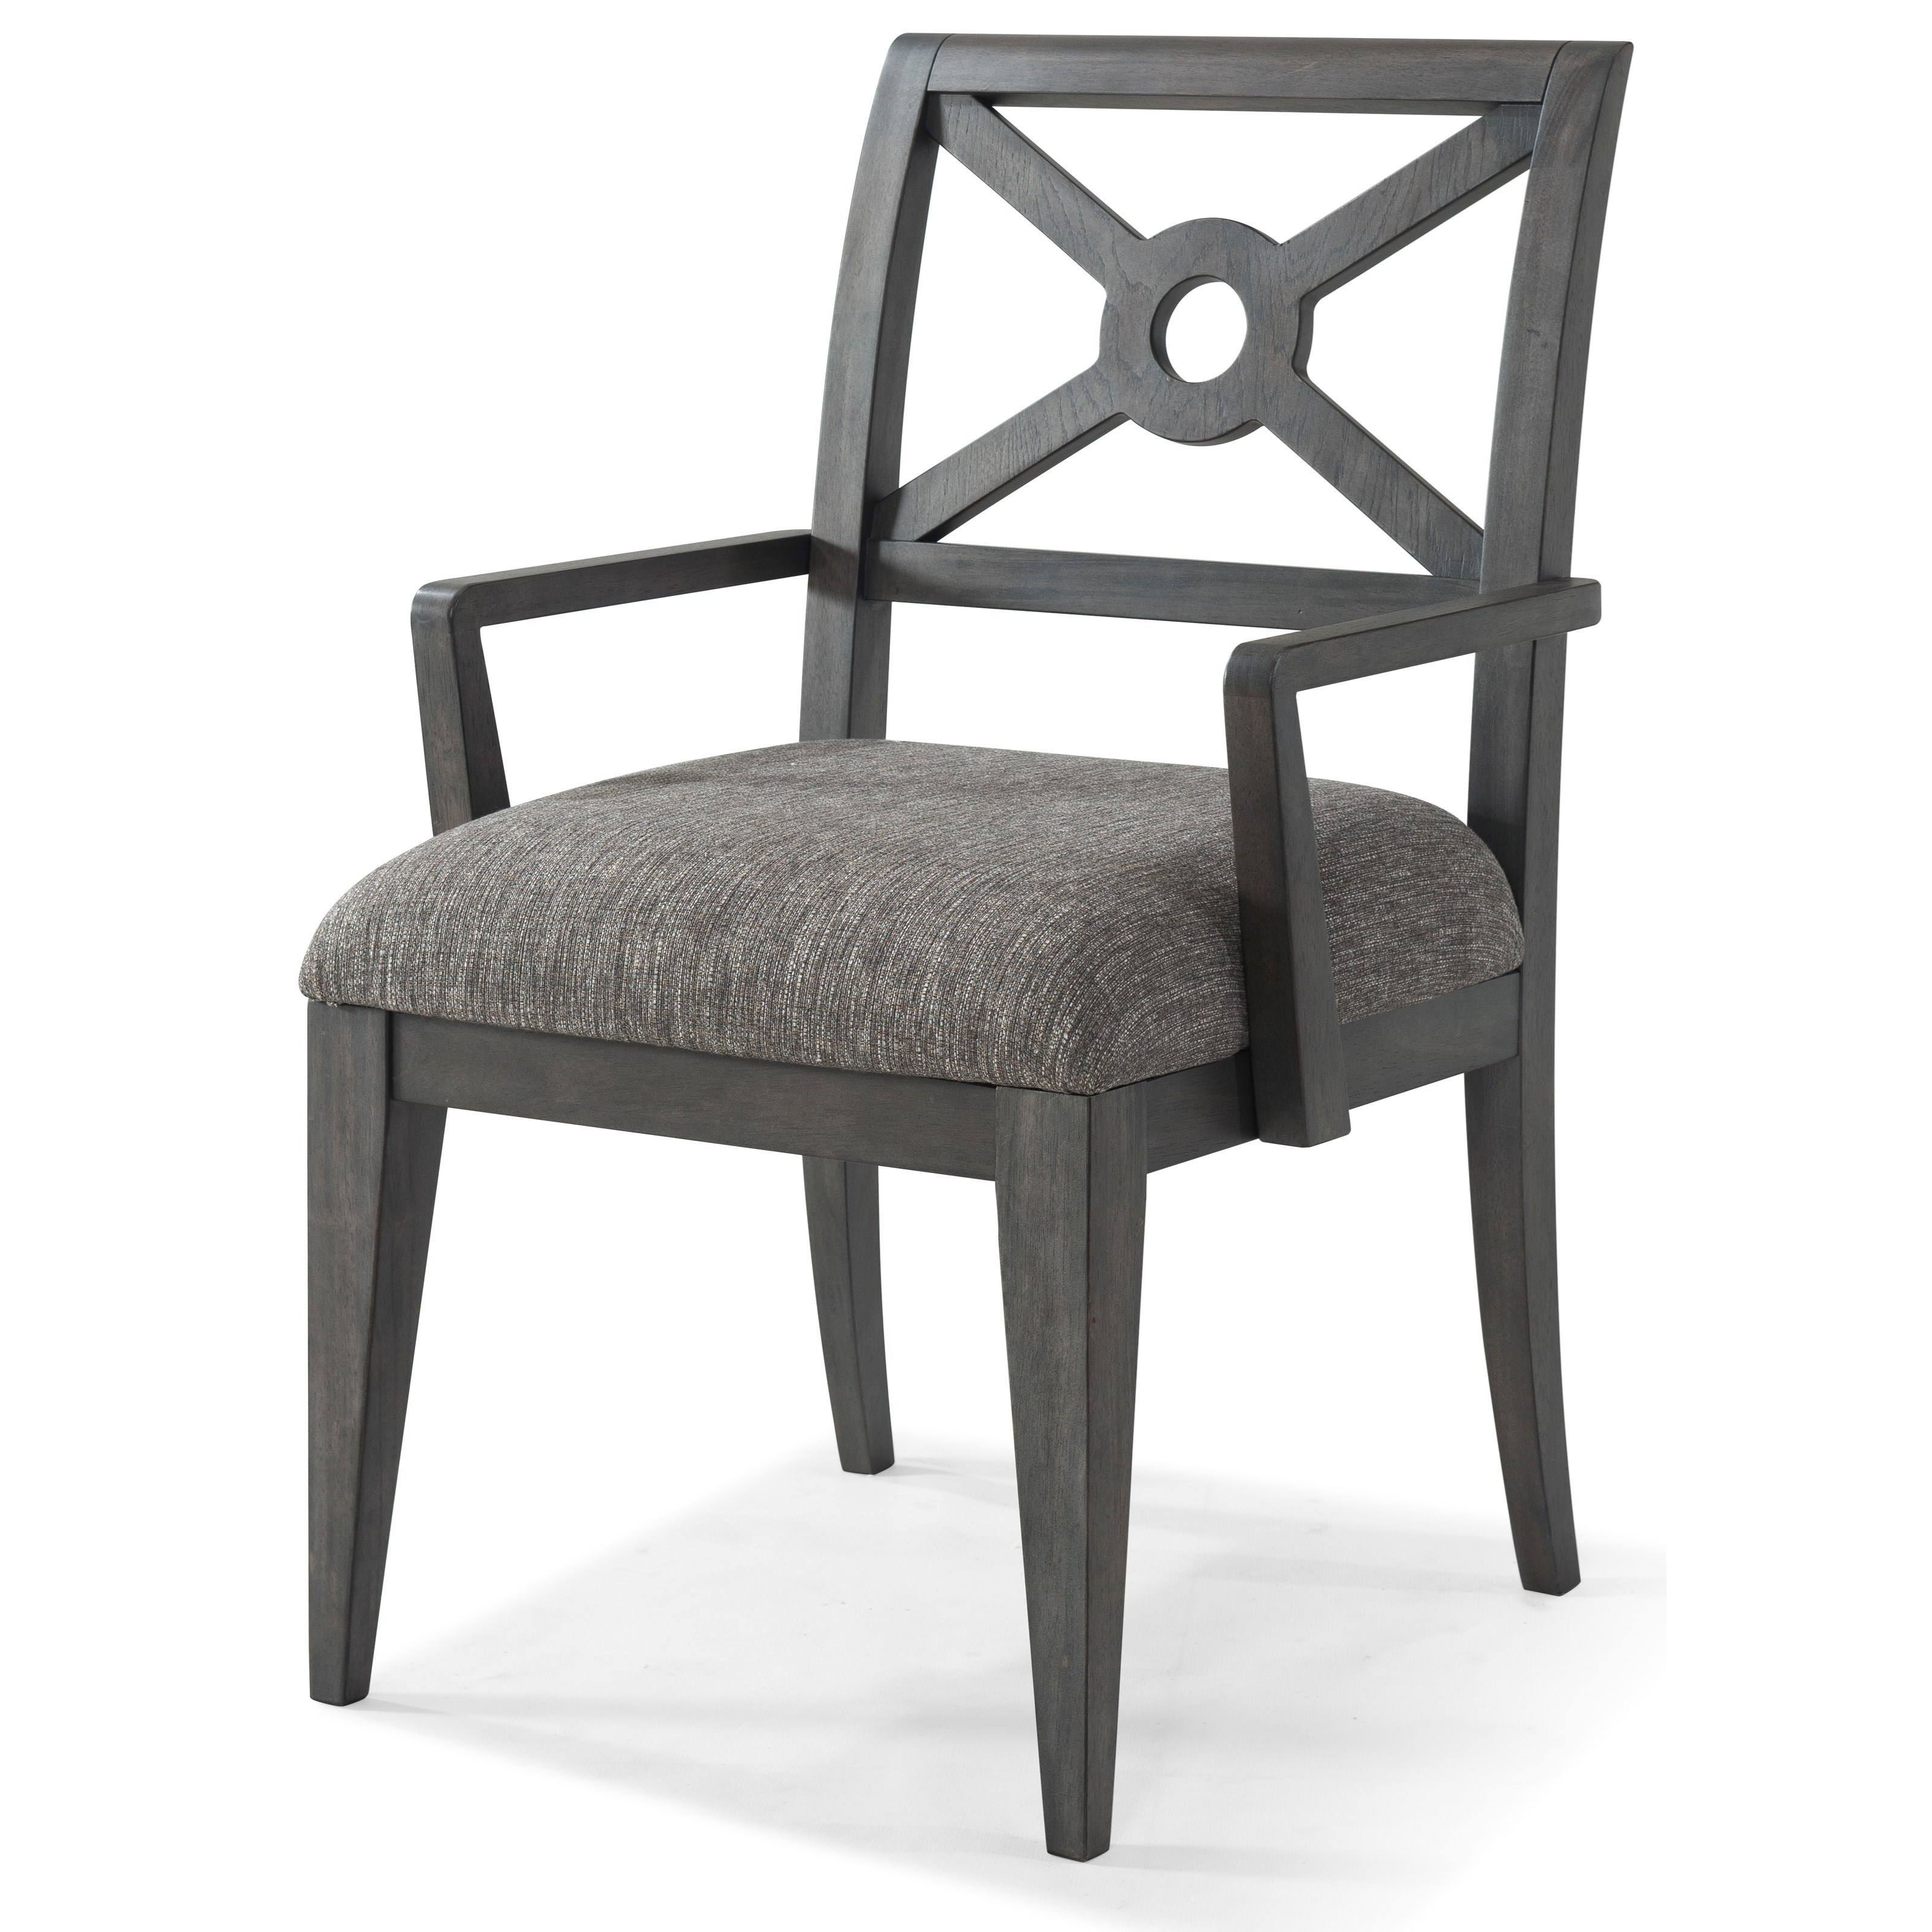 """Trisha Yearwood Home Collection by Klaussner Music City """"Under The Rainbow"""" Uph. Arm Chair - Item Number: 925-906SU DRC"""